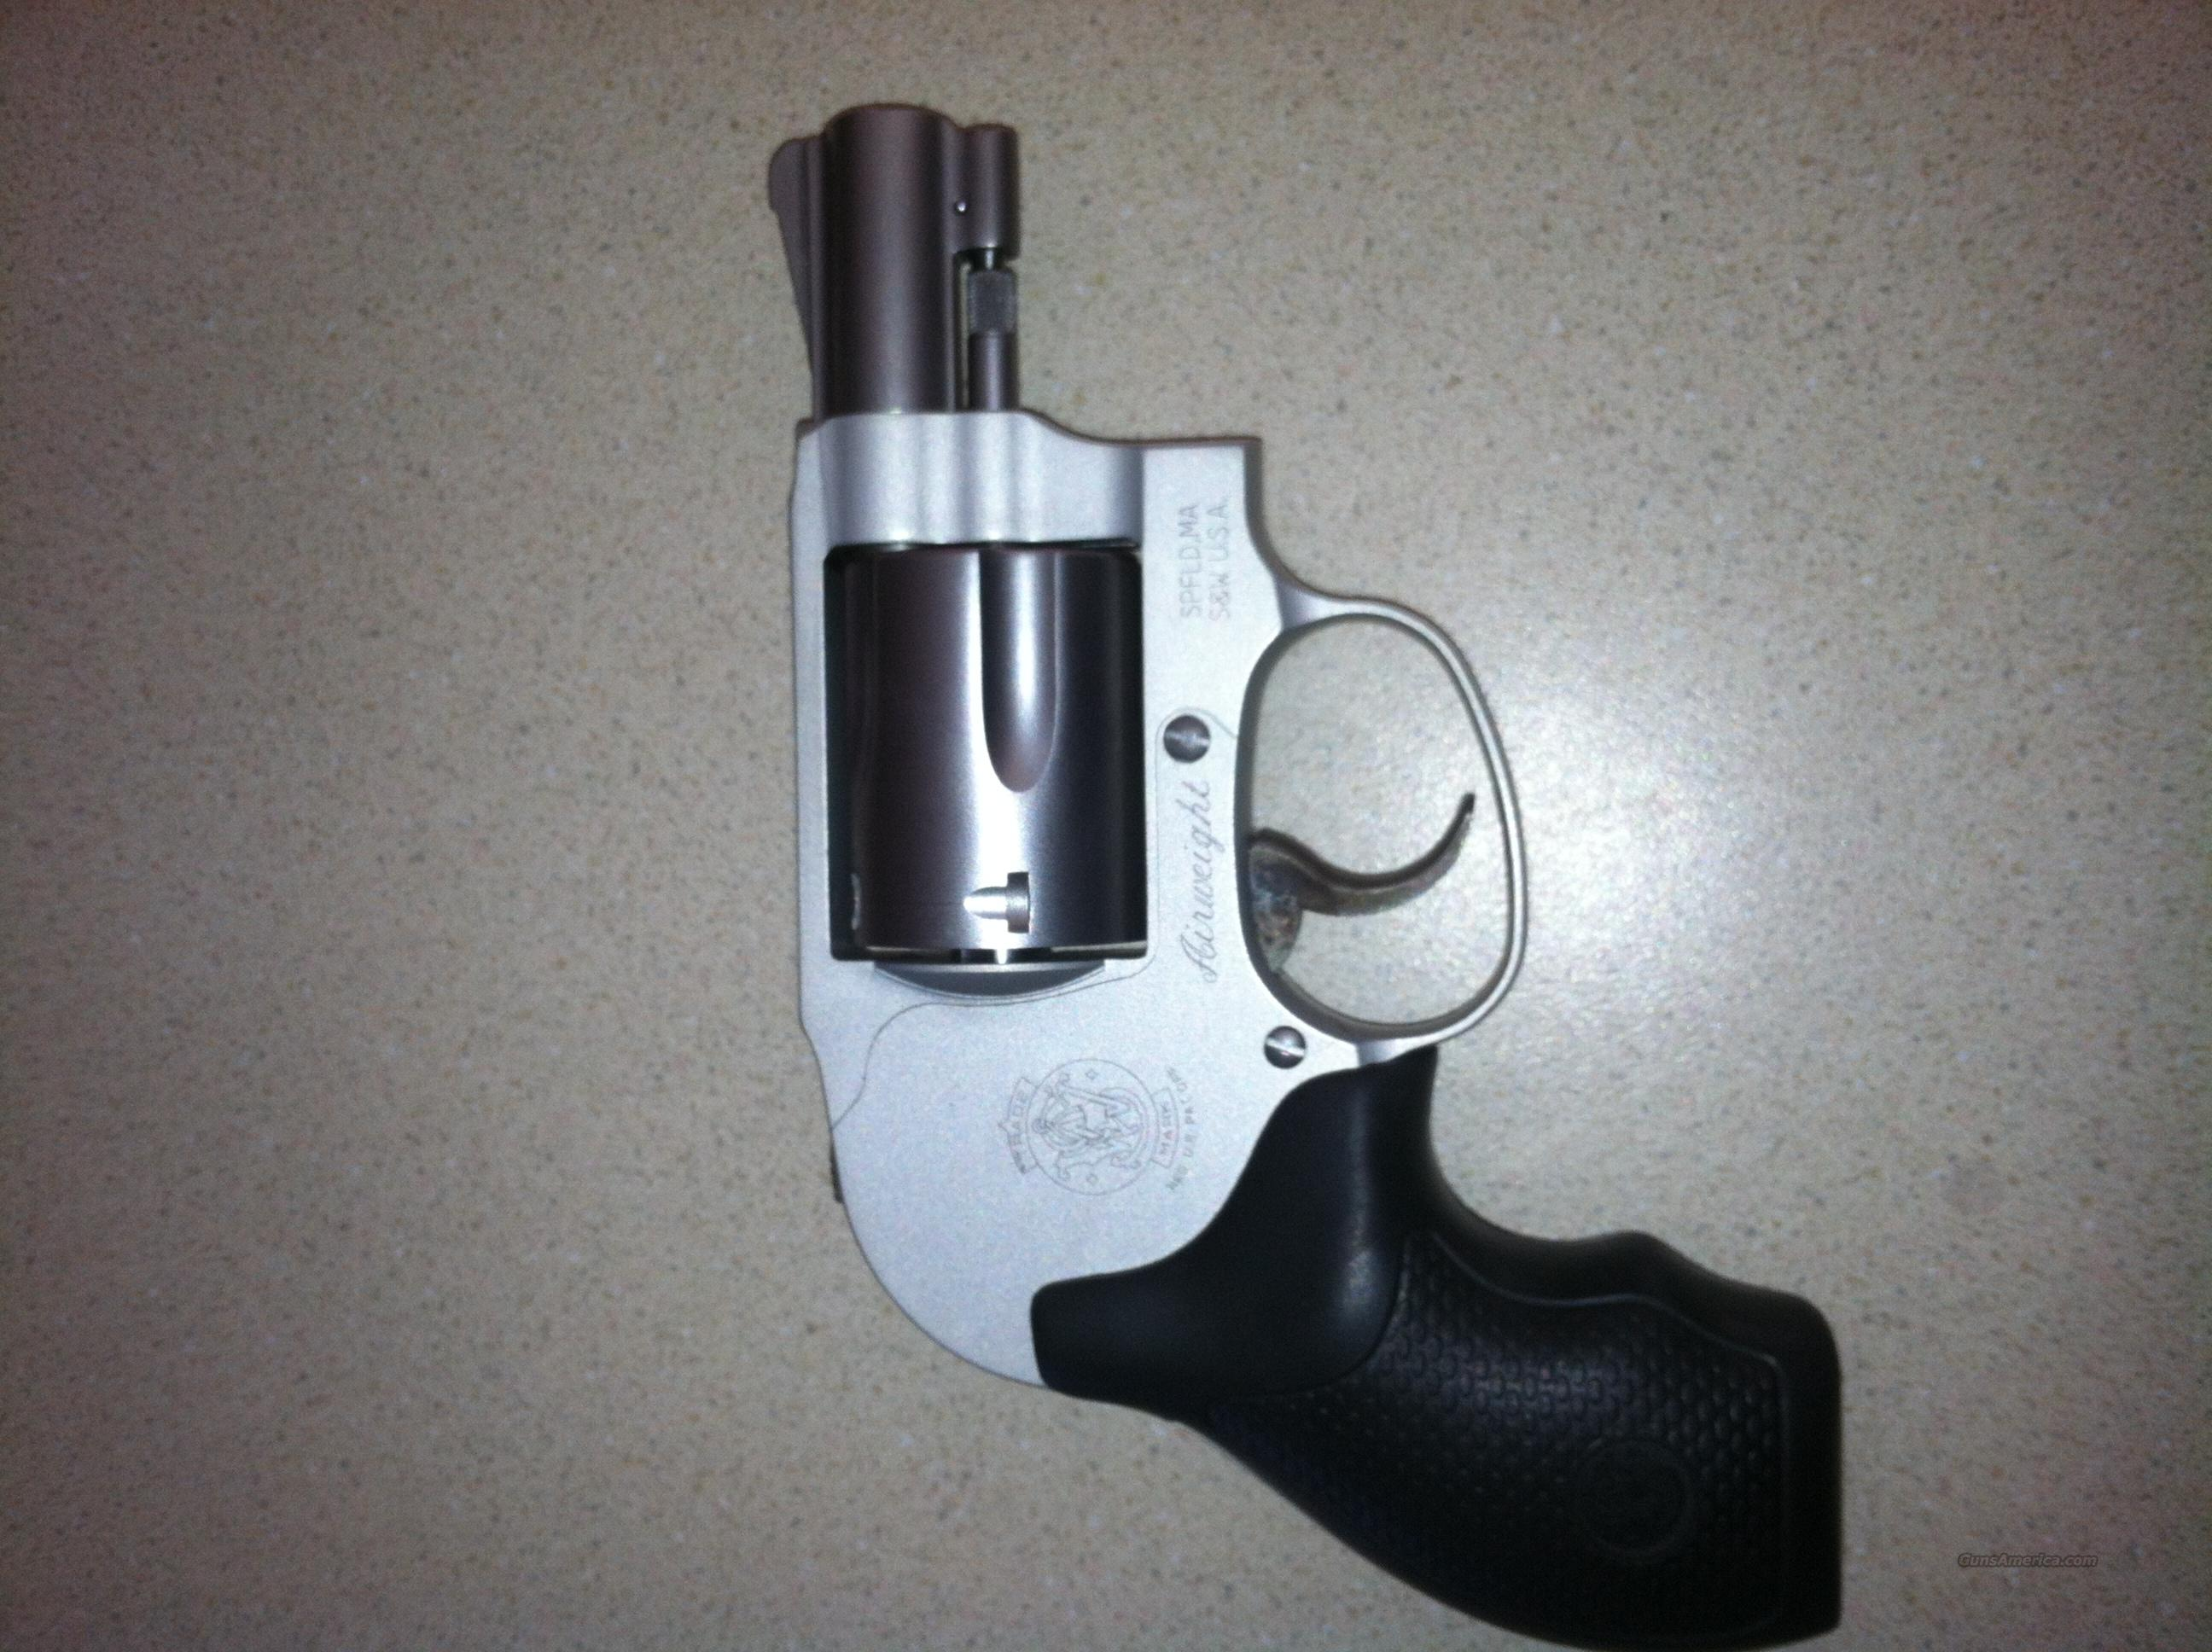 Smith & Wesson Model 638 Airweight Bodyguard 38 Special   Guns > Pistols > Smith & Wesson Revolvers > Pocket Pistols